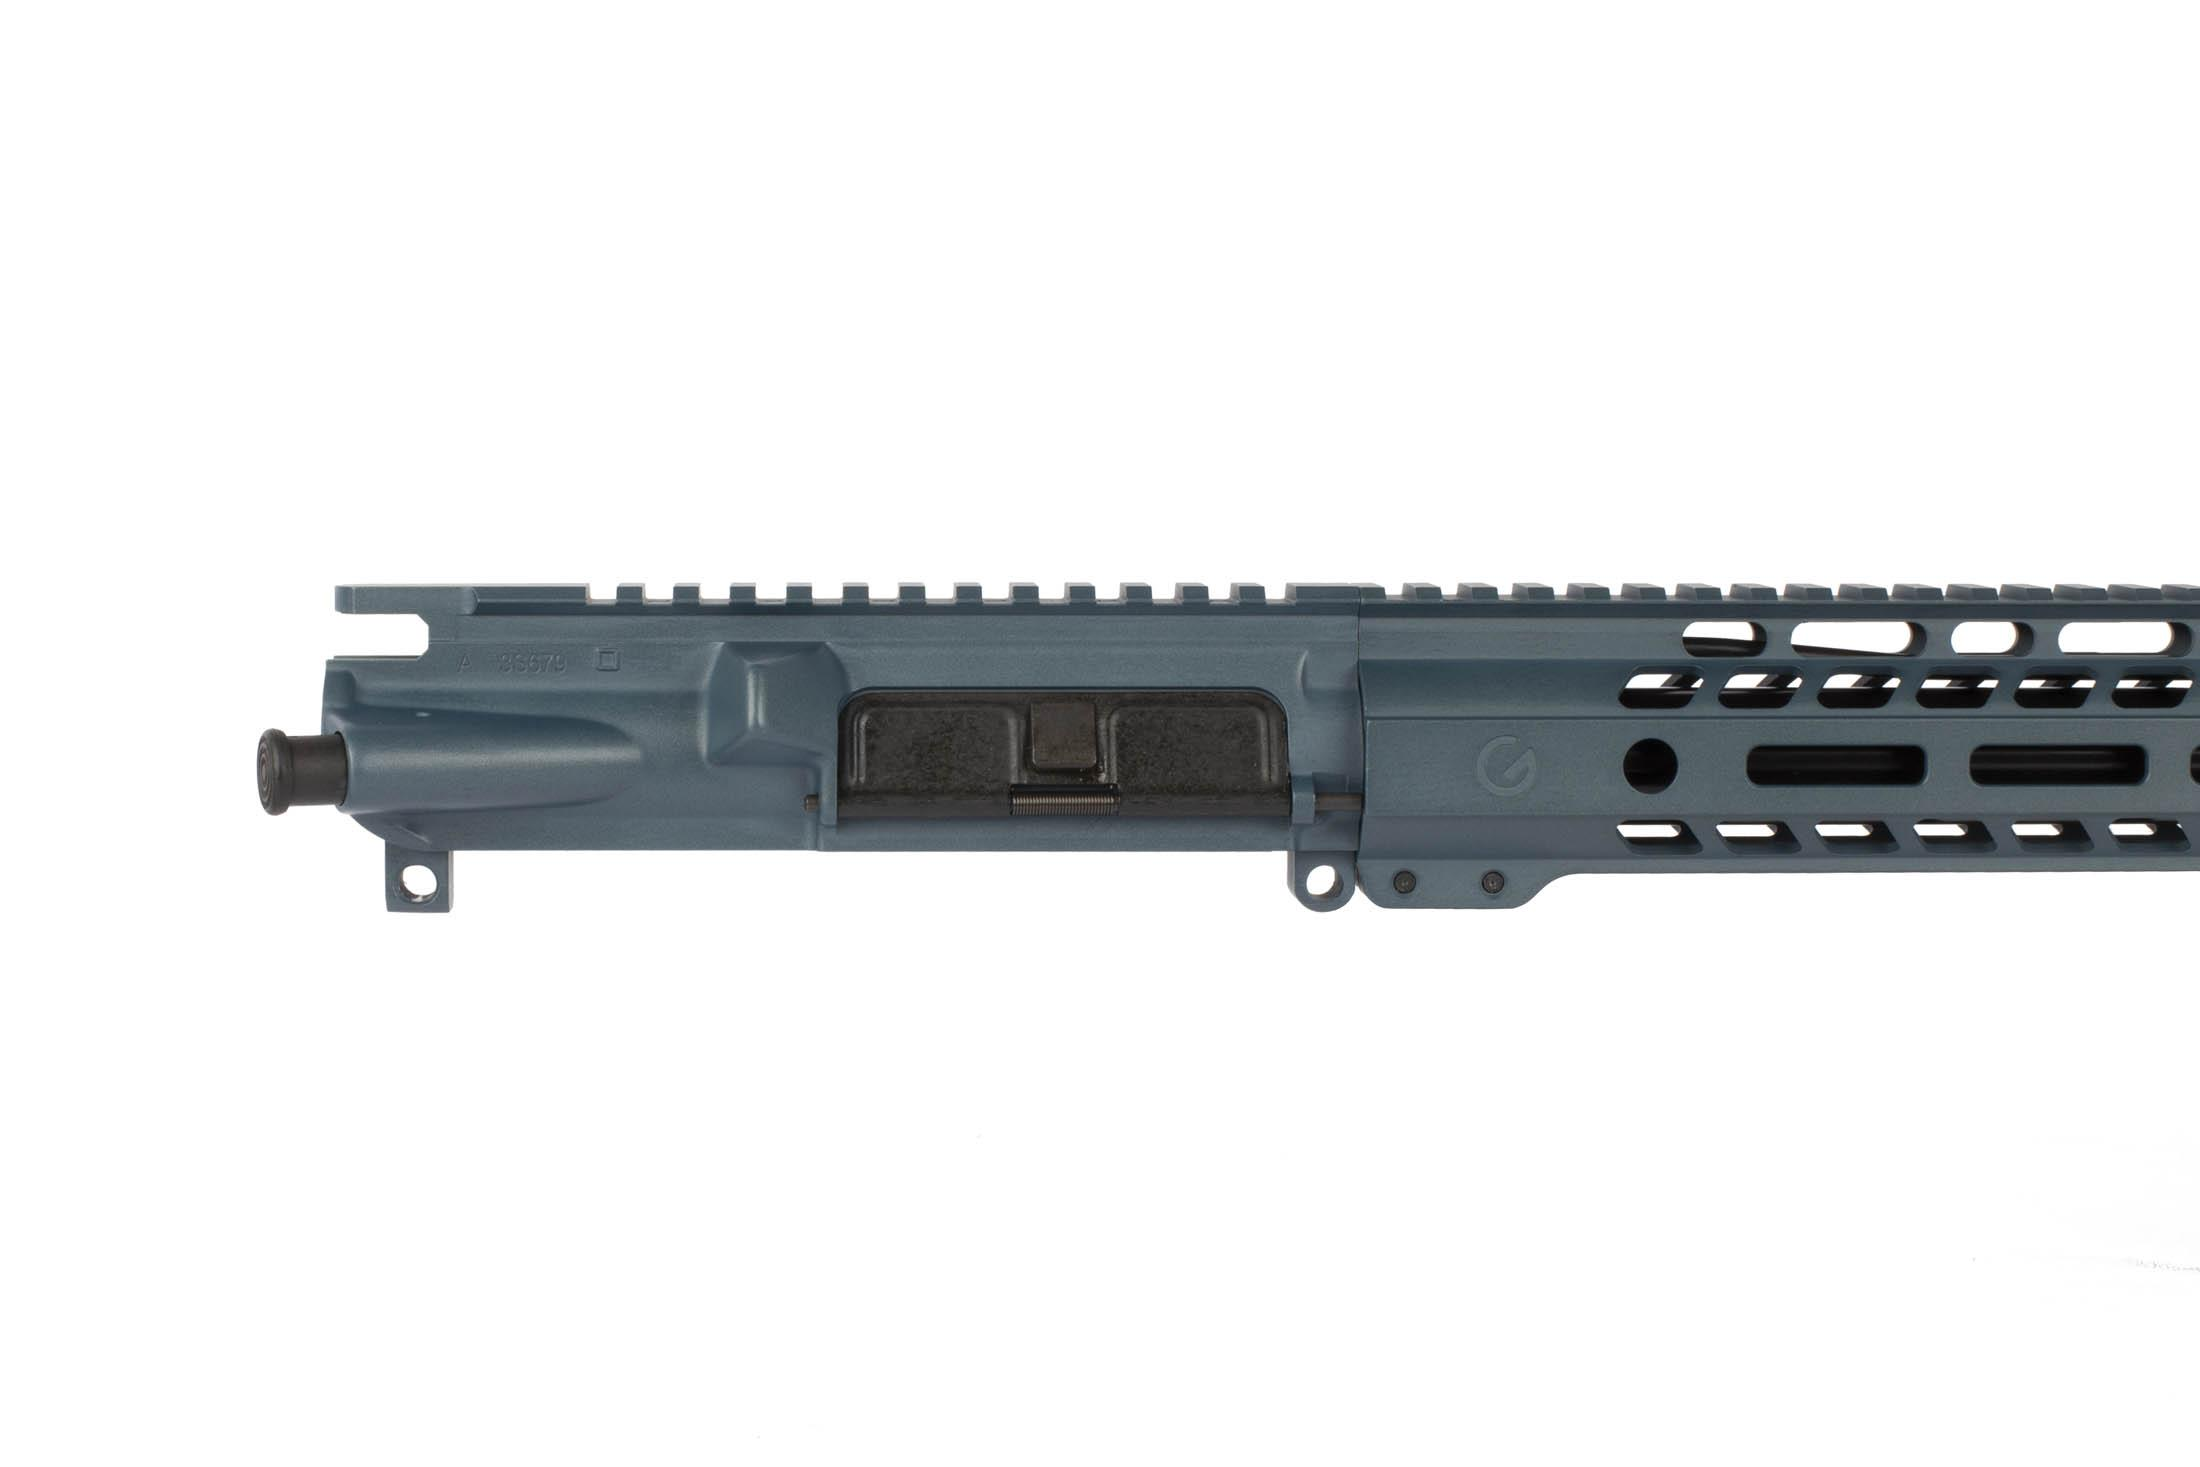 This Ghost Firearms 24 6.5 Grendel 1:8 Elite Rifle Length Barreled Upper is available in Blue Titanium